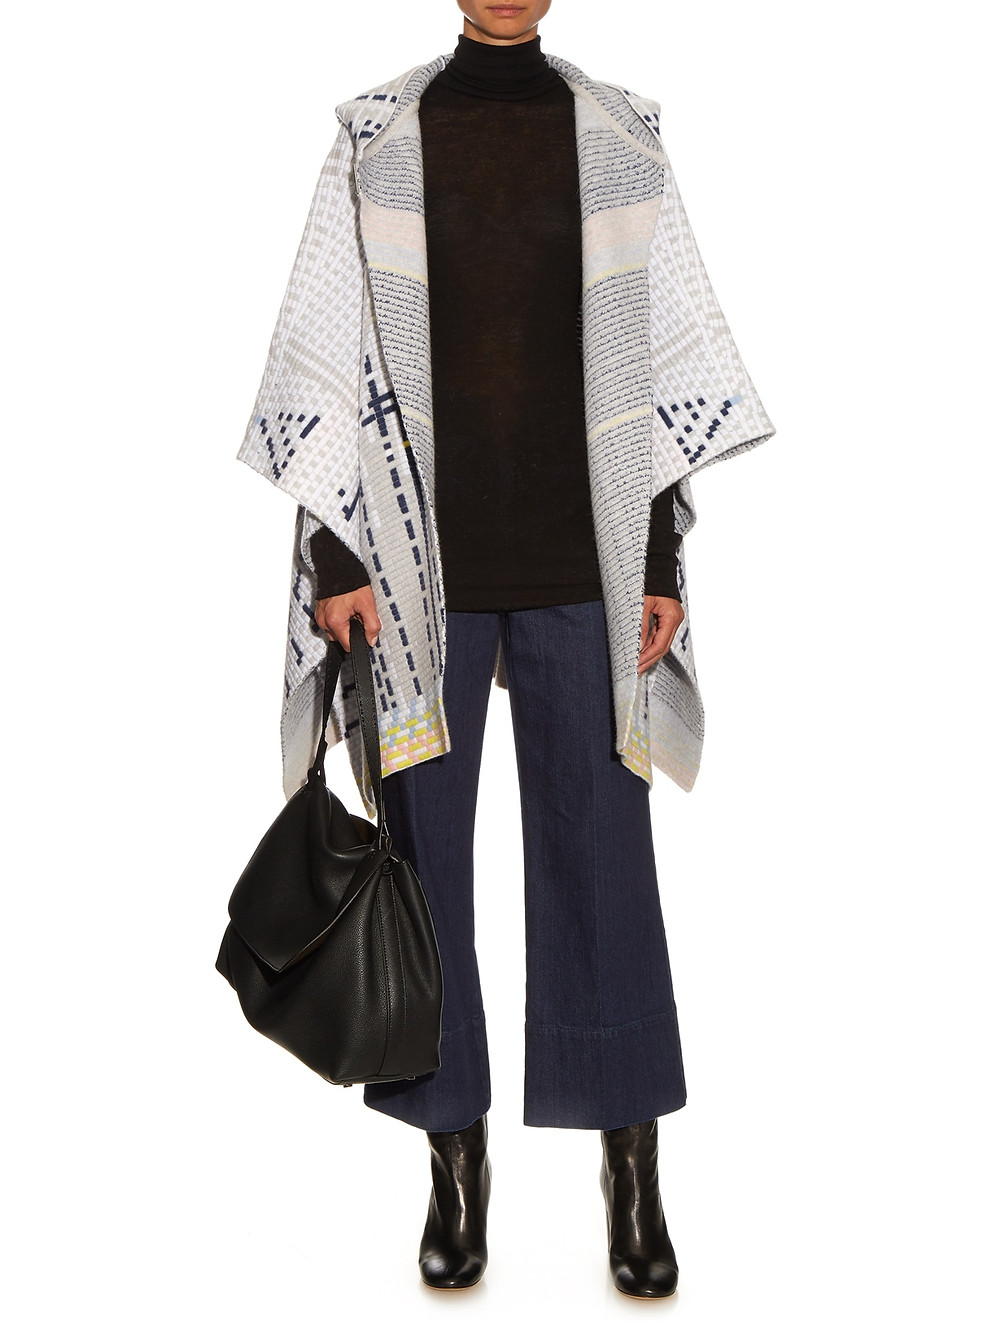 Peter Pilotto Ottaman knit wool-blend cape $1,250